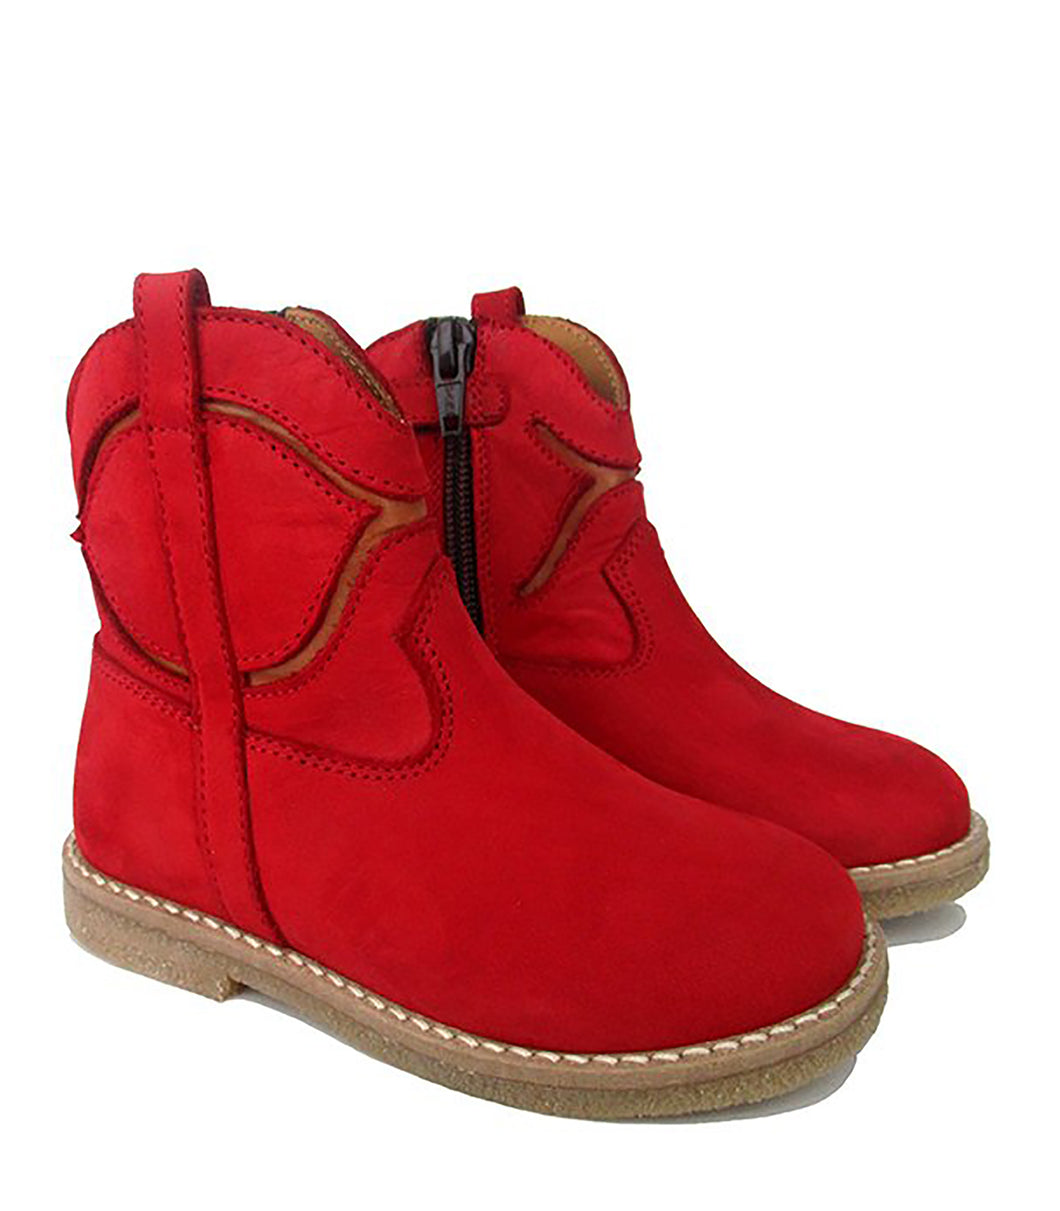 Toddler Boots in Red and Tan Nabuk